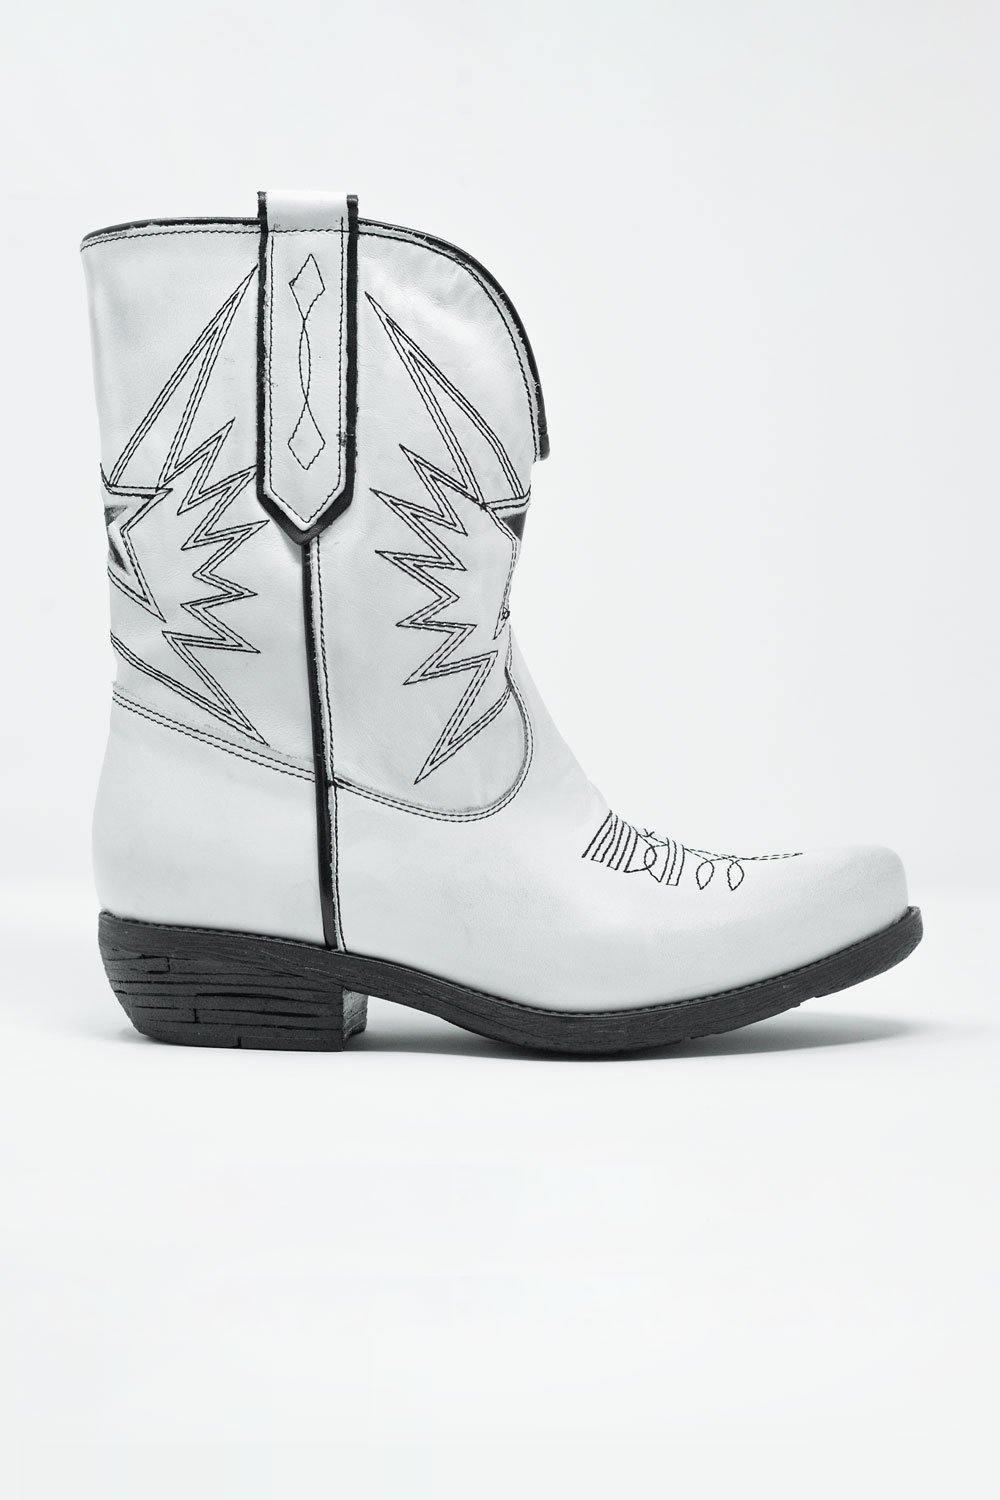 Q2 White western knee boots with black detail